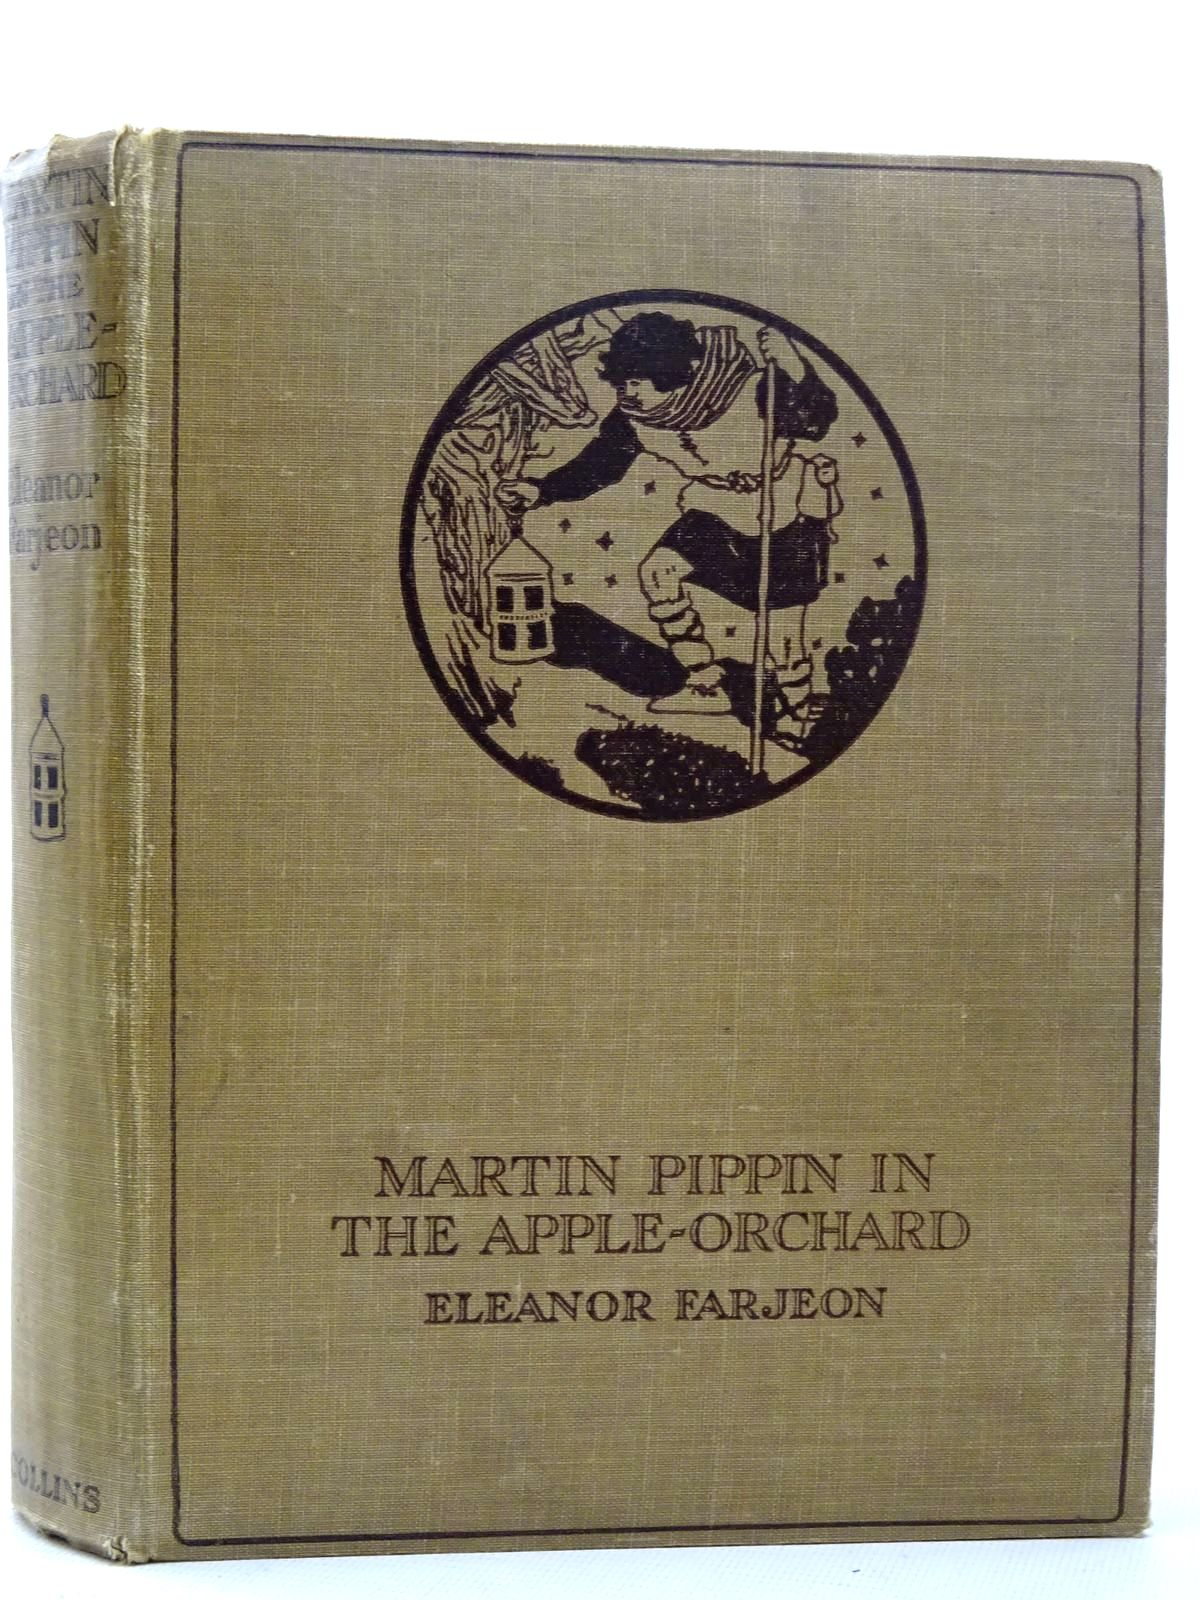 Photo of MARTIN PIPPIN IN THE APPLE-ORCHARD written by Farjeon, Eleanor illustrated by Brock, C.E. published by W. Collins Sons and Co. Ltd. (STOCK CODE: 2126269)  for sale by Stella & Rose's Books